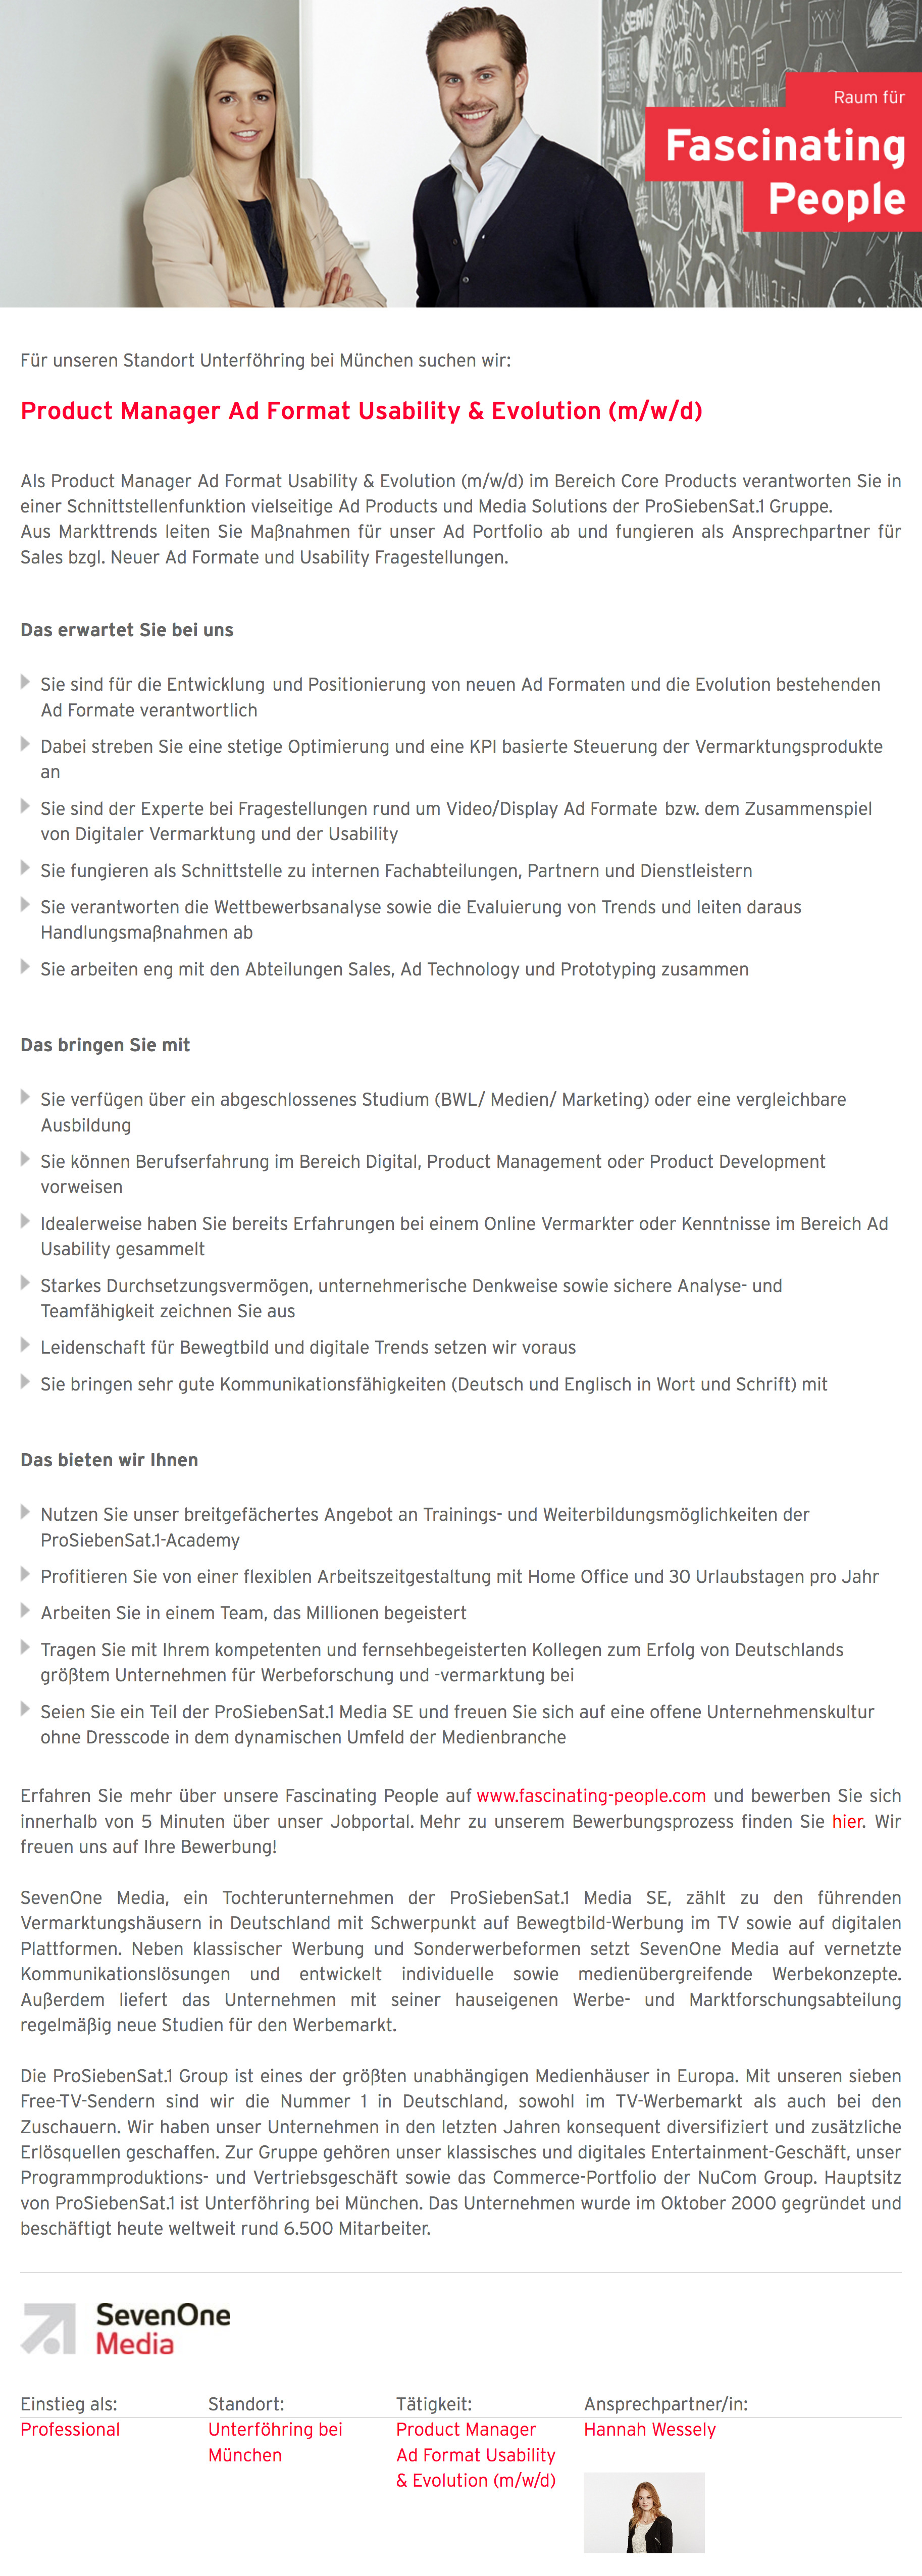 Product Manager Ad Format Usability & Evolution (m/w/d)